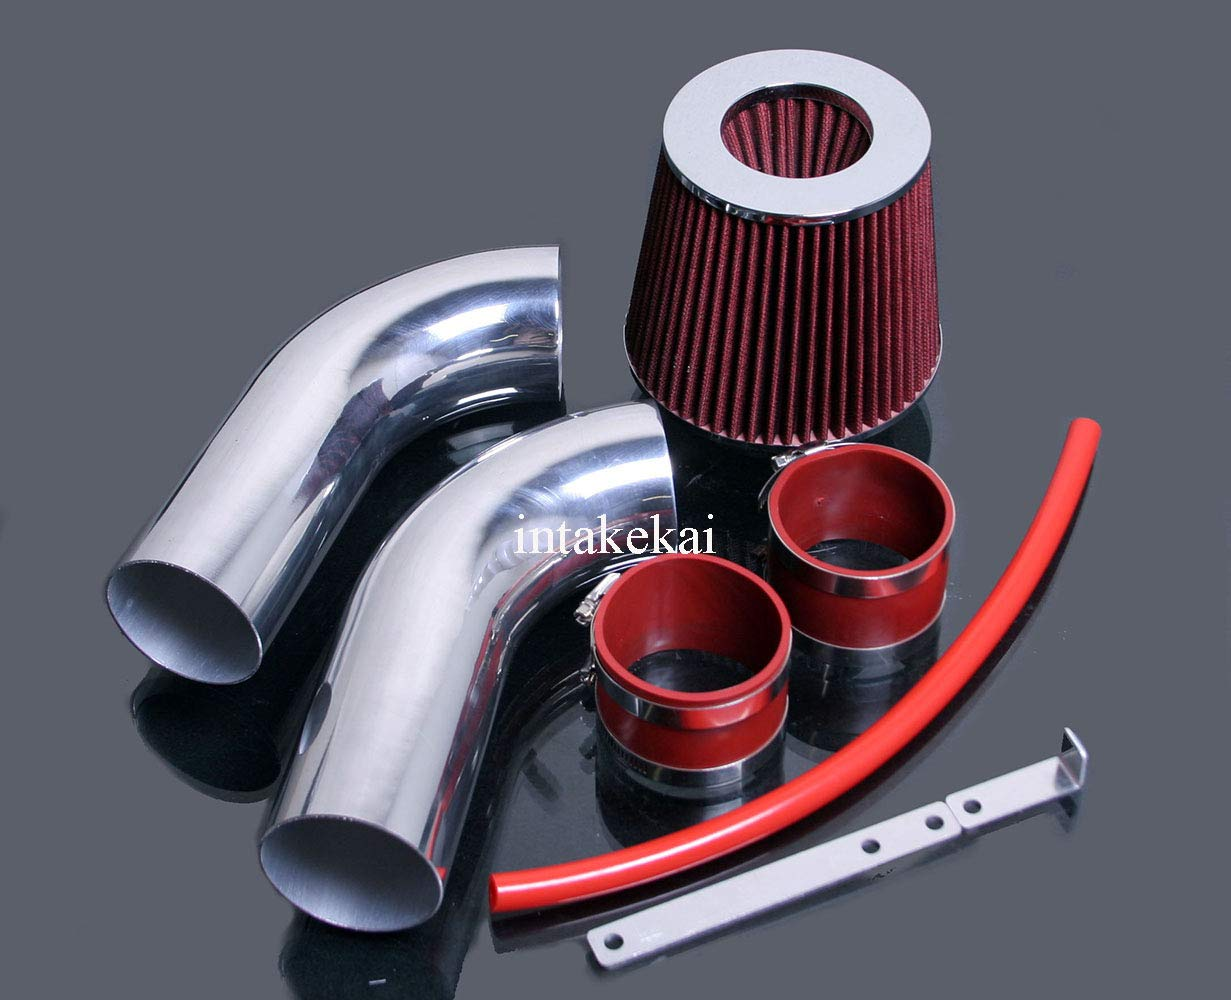 PERFORMANCE SHORT RAM AIR INTAKE KIT FOR 1999-2004 JEEP GRAND CHEROKEE 4.7 4.7L V8 ENGINE (RED) INTAKE KAI